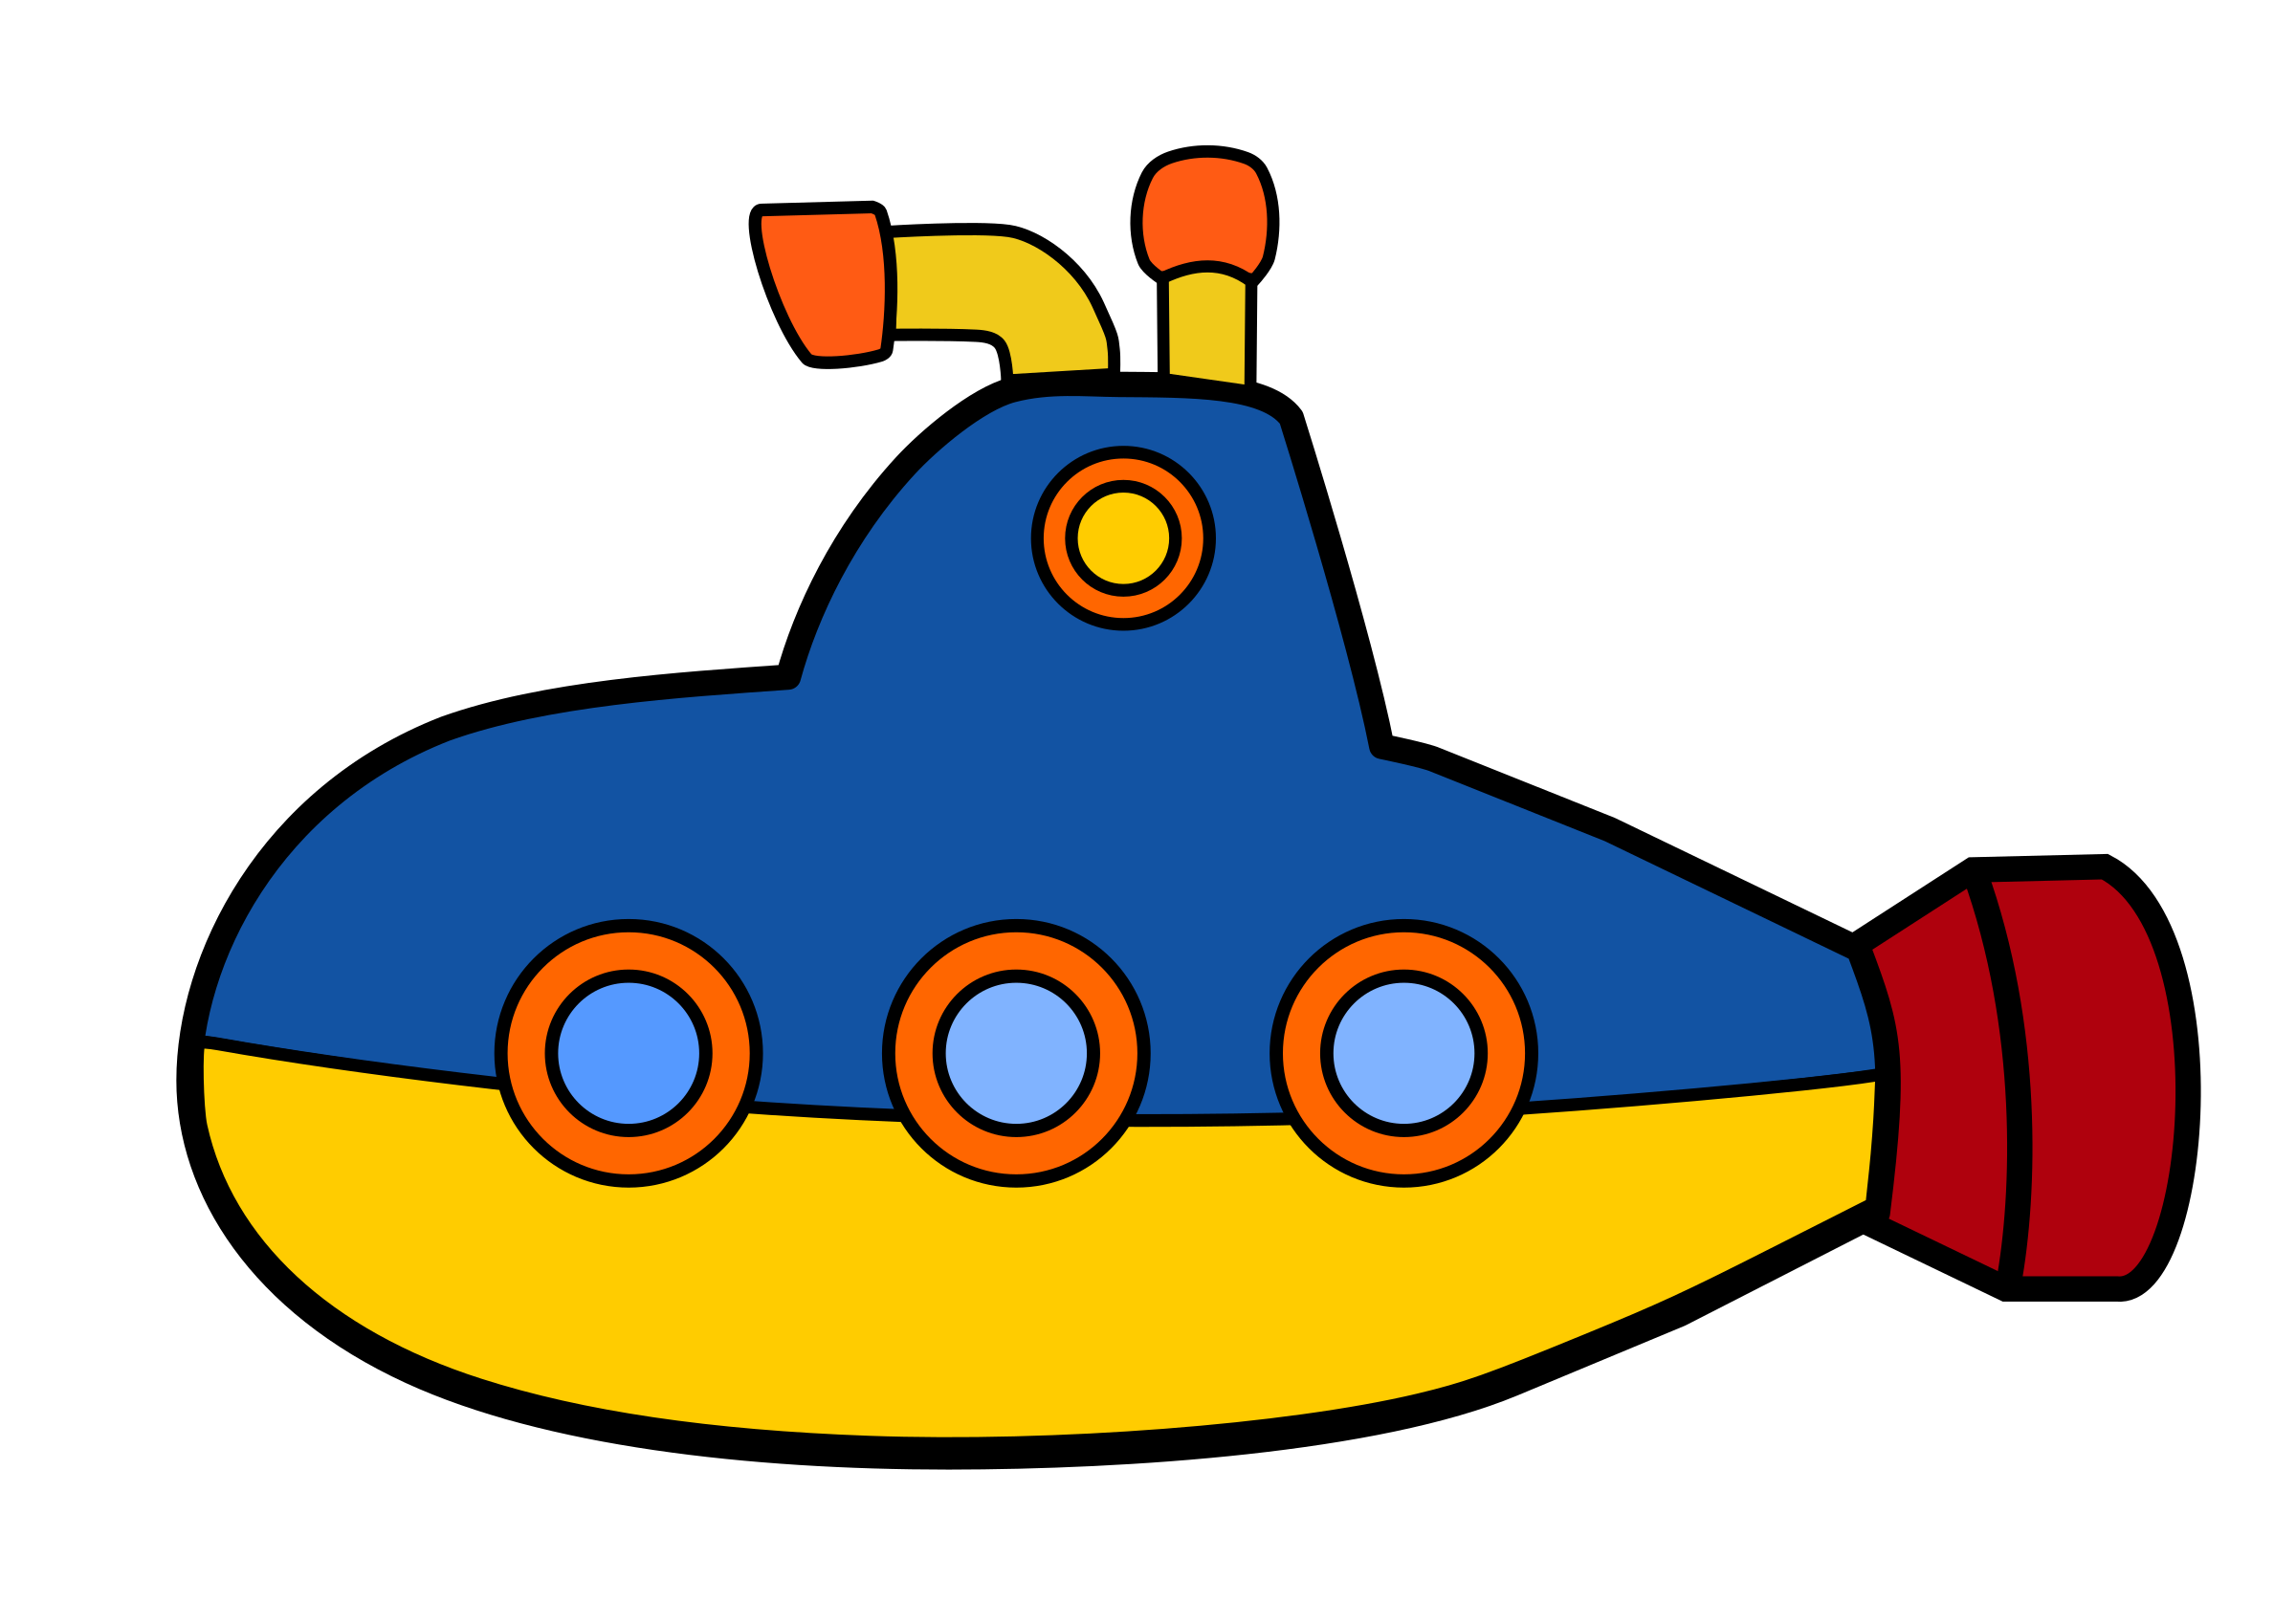 Toy sub 1 by @ejmillan, Blue and yellow submarine designed.